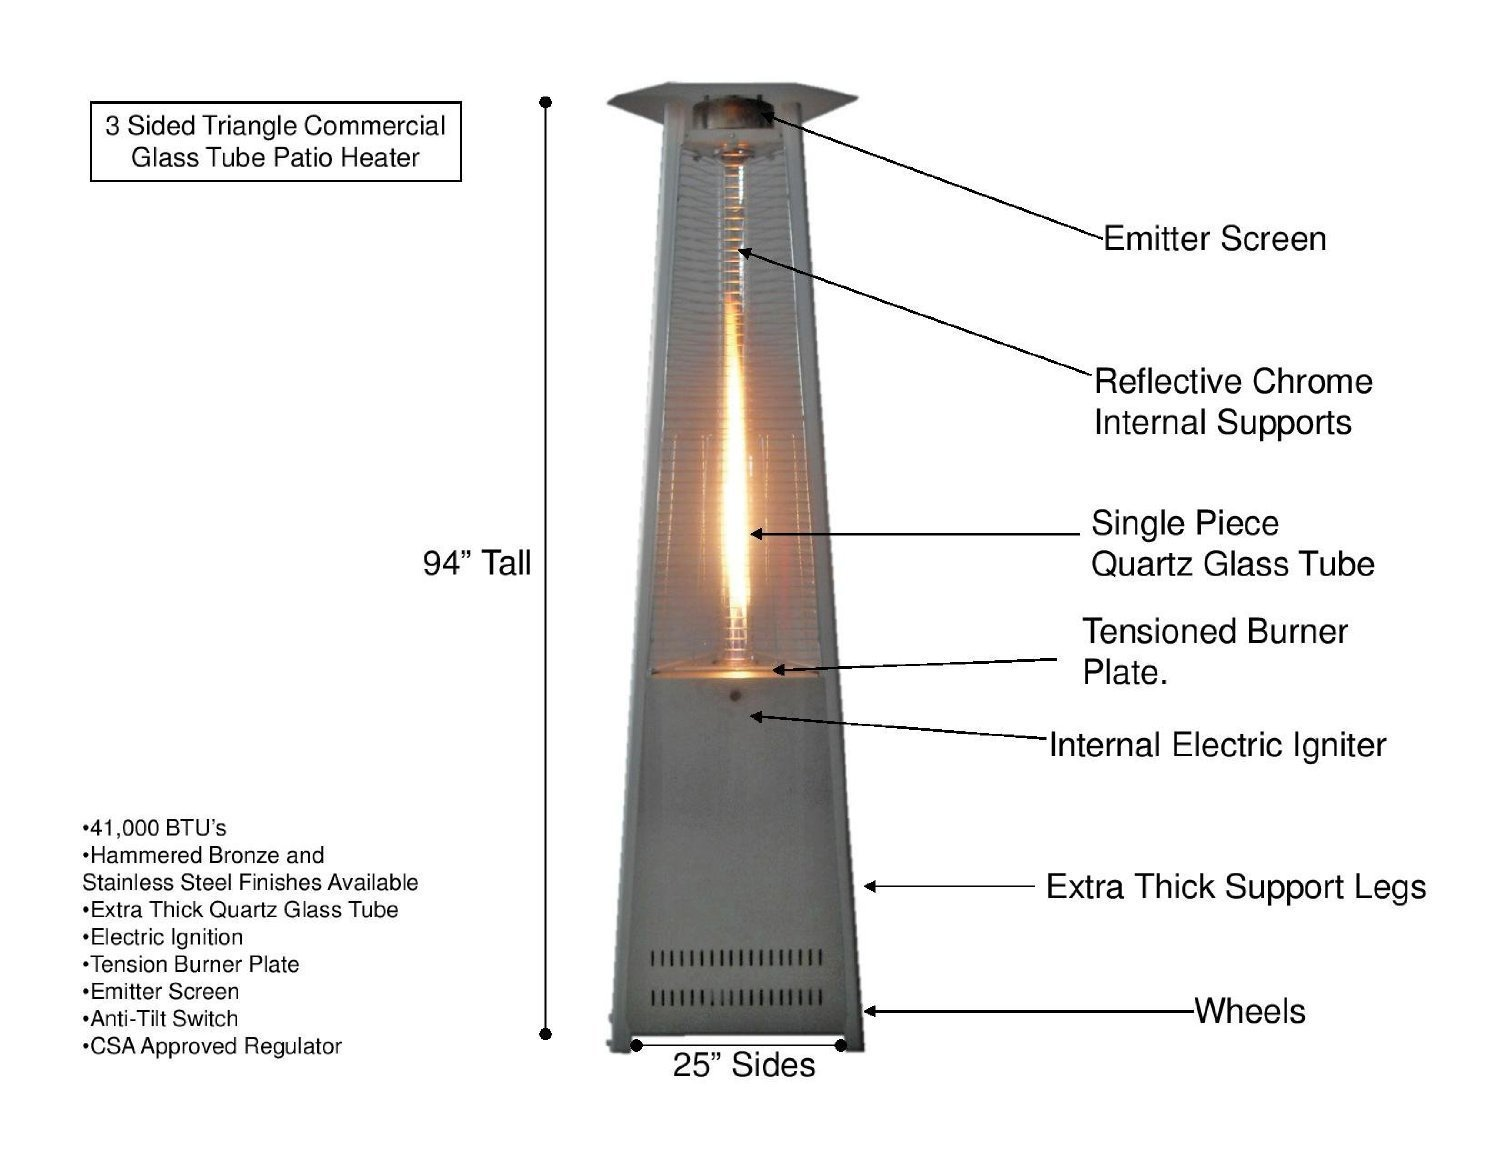 Amazon.com : Mocha Cover For 3 Sided Glass Tube Patio Heater : Garden U0026  Outdoor